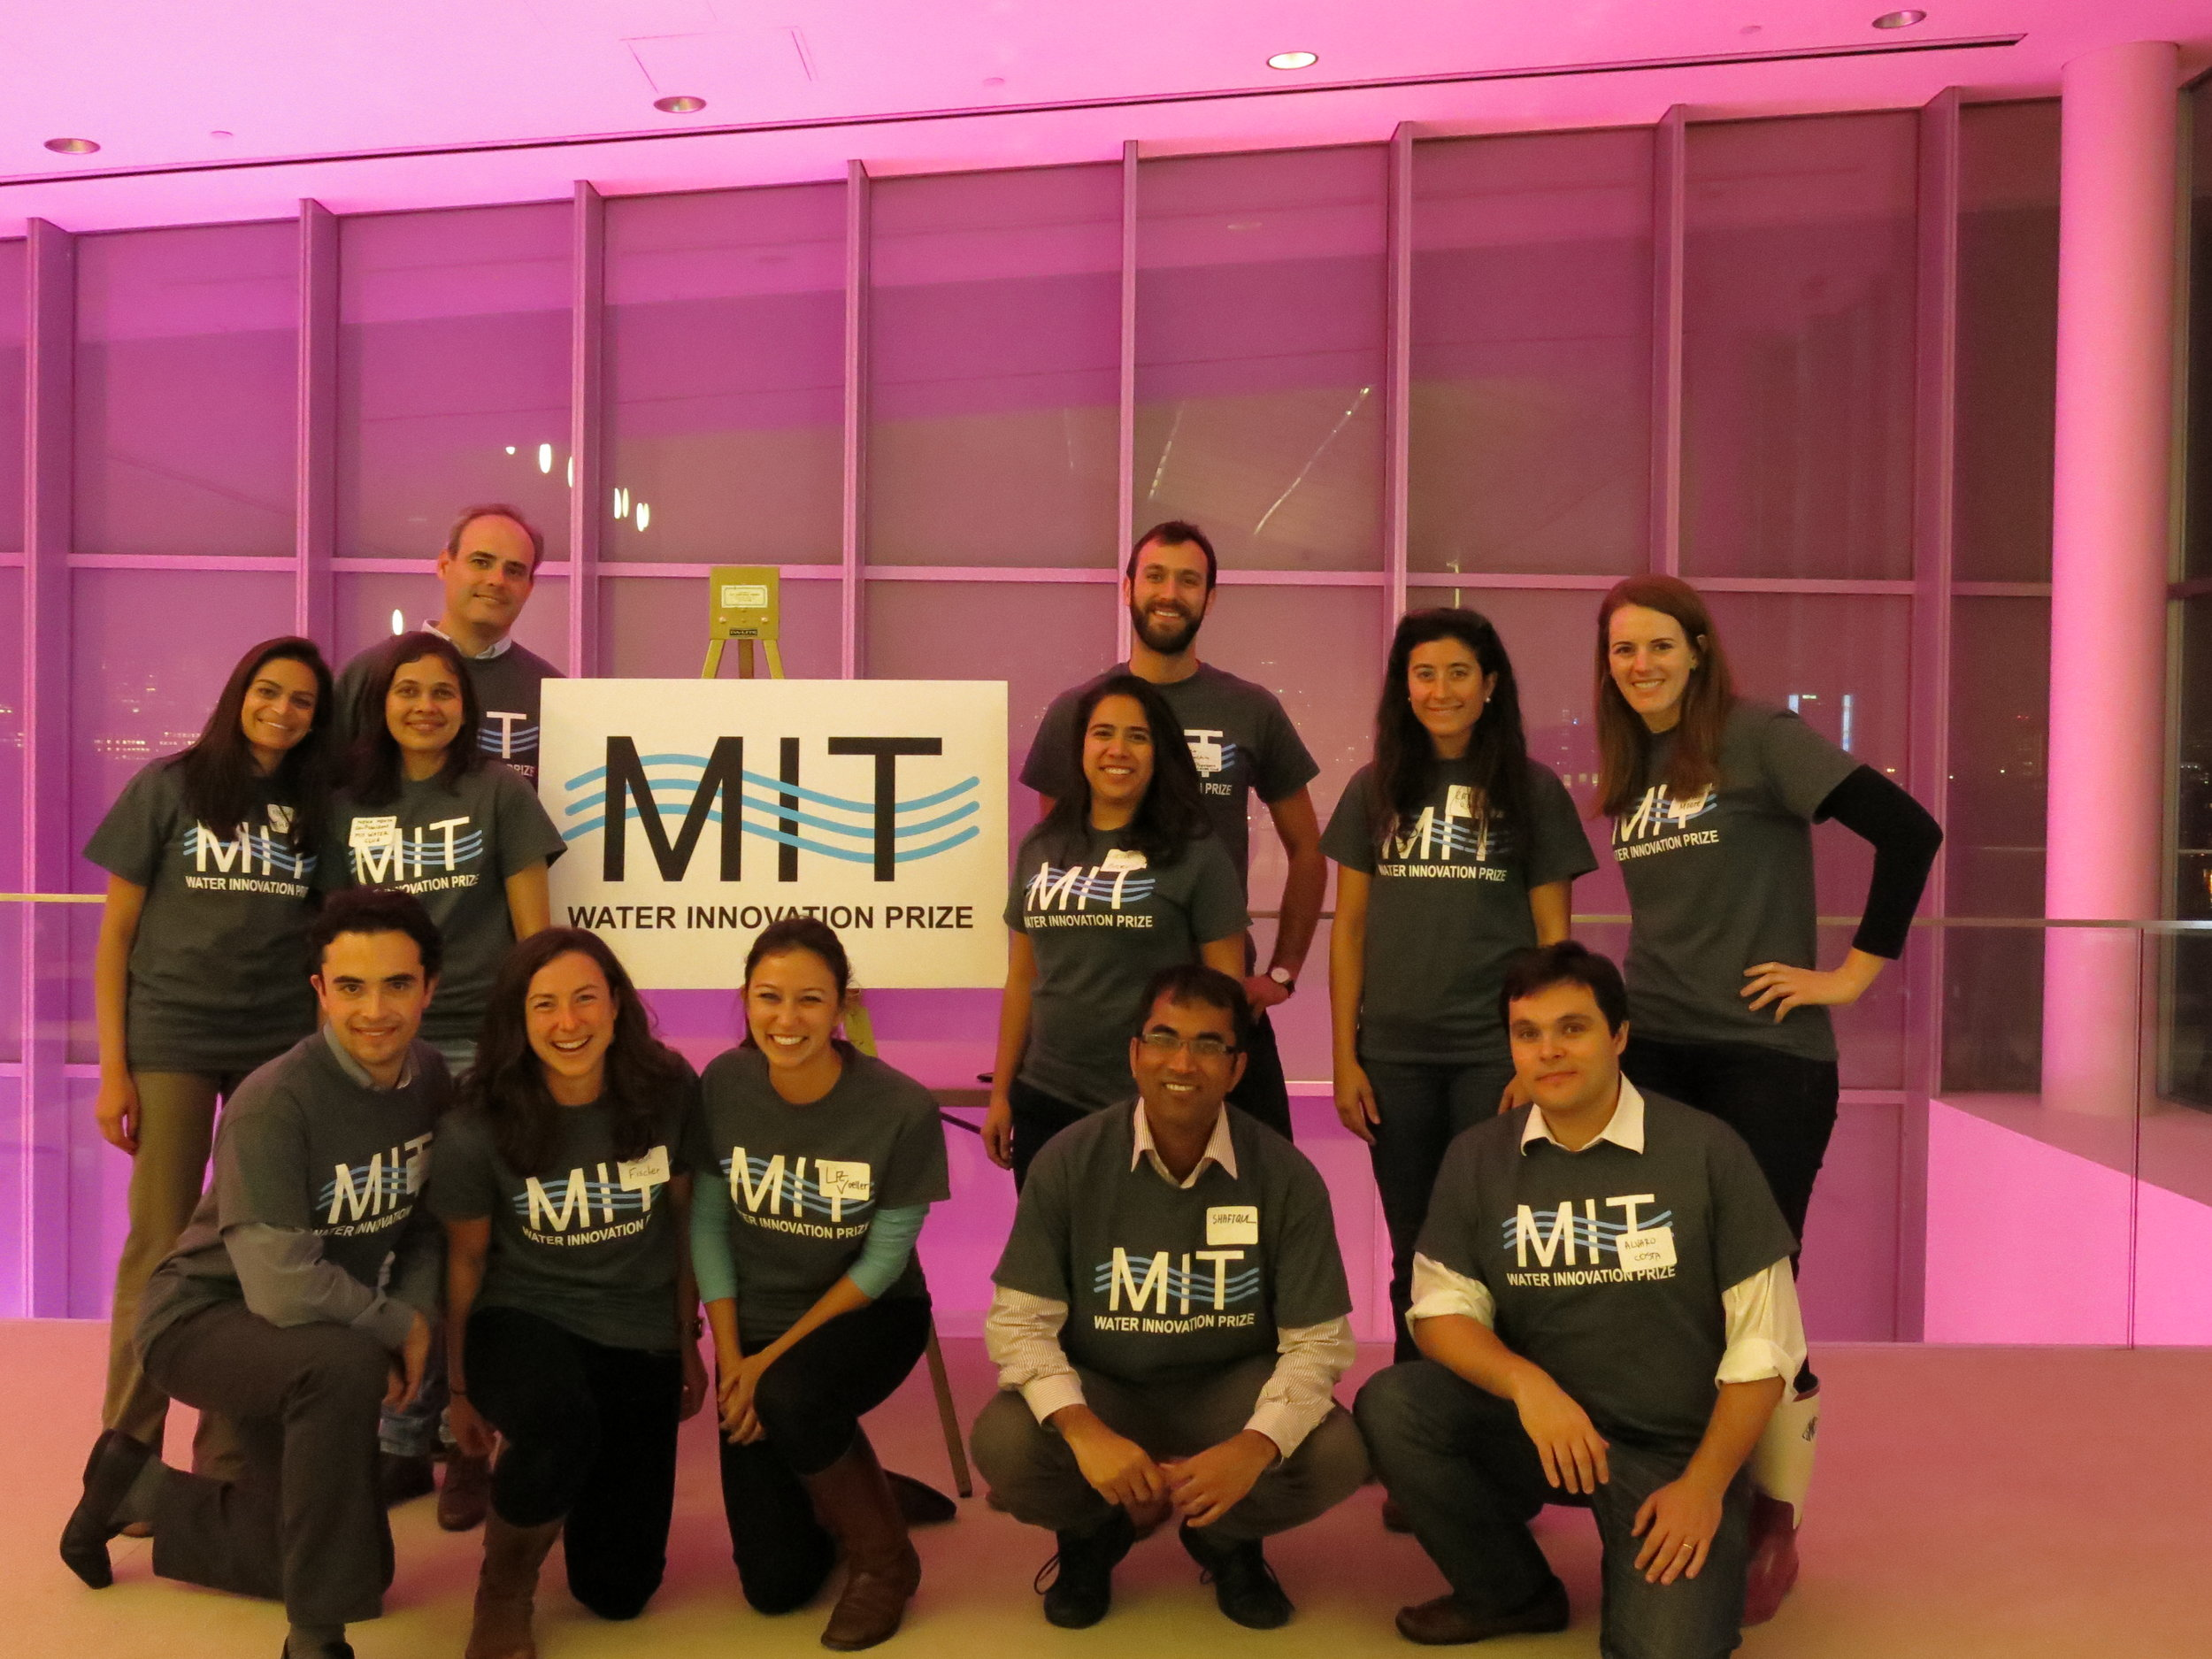 MIT Water Innovation Prize Team, 2015-2016